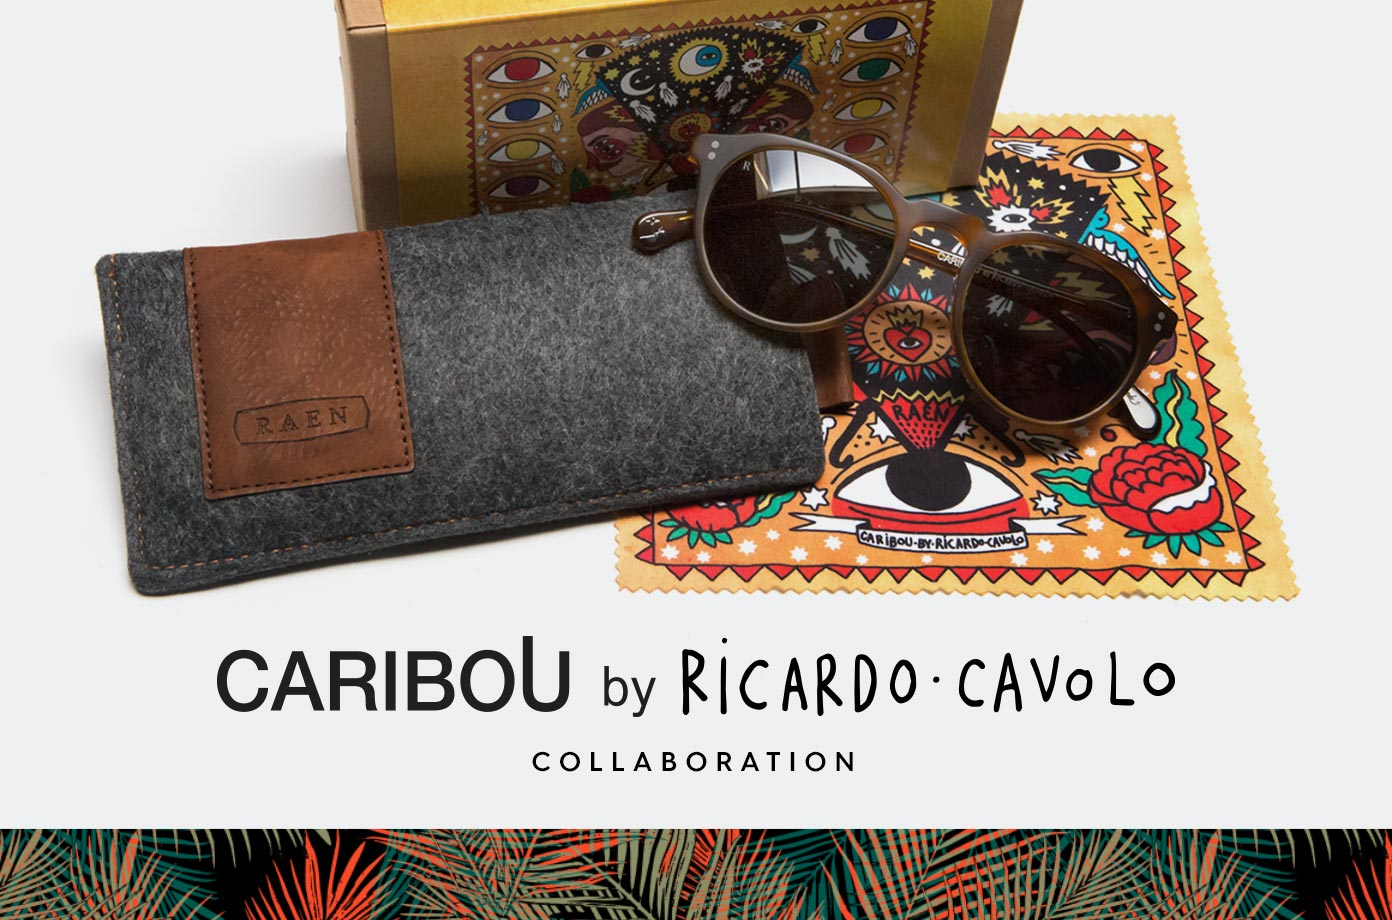 CARIBOU BY RICARDO CAVOLO COLLABORATION